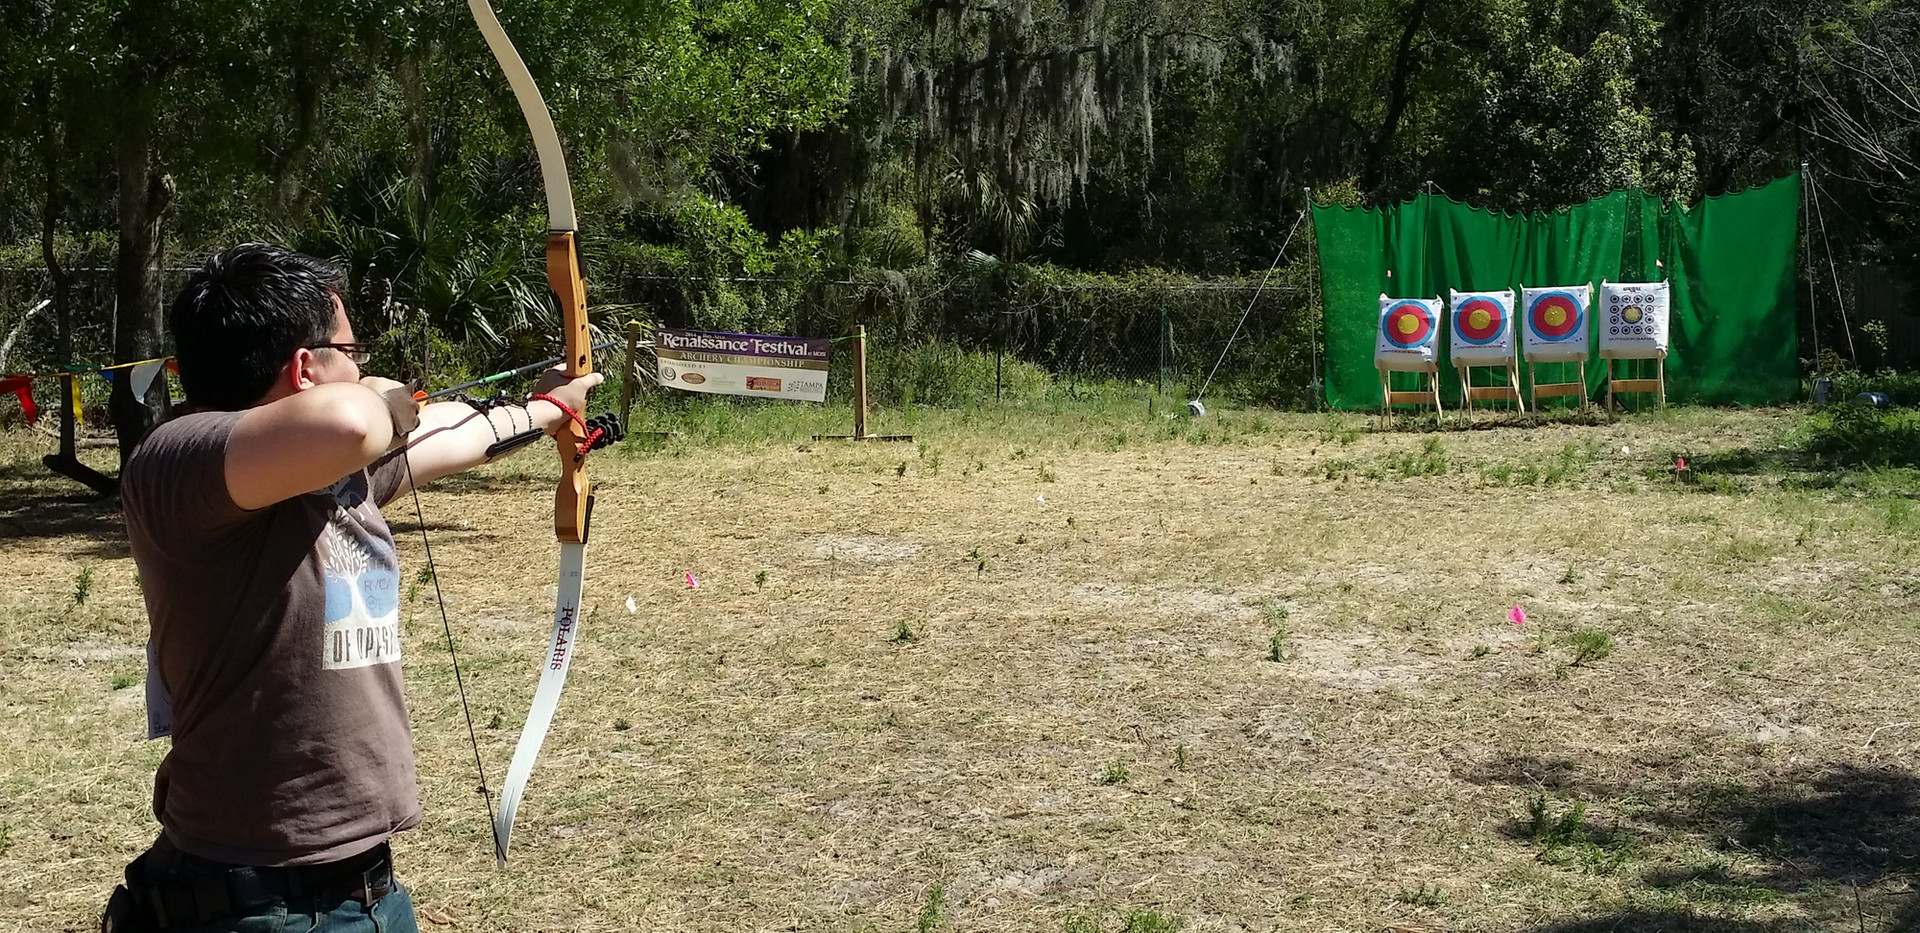 TAMPA_ARCHERY_SCHOOL_BAY_AREA_RENAISSANC